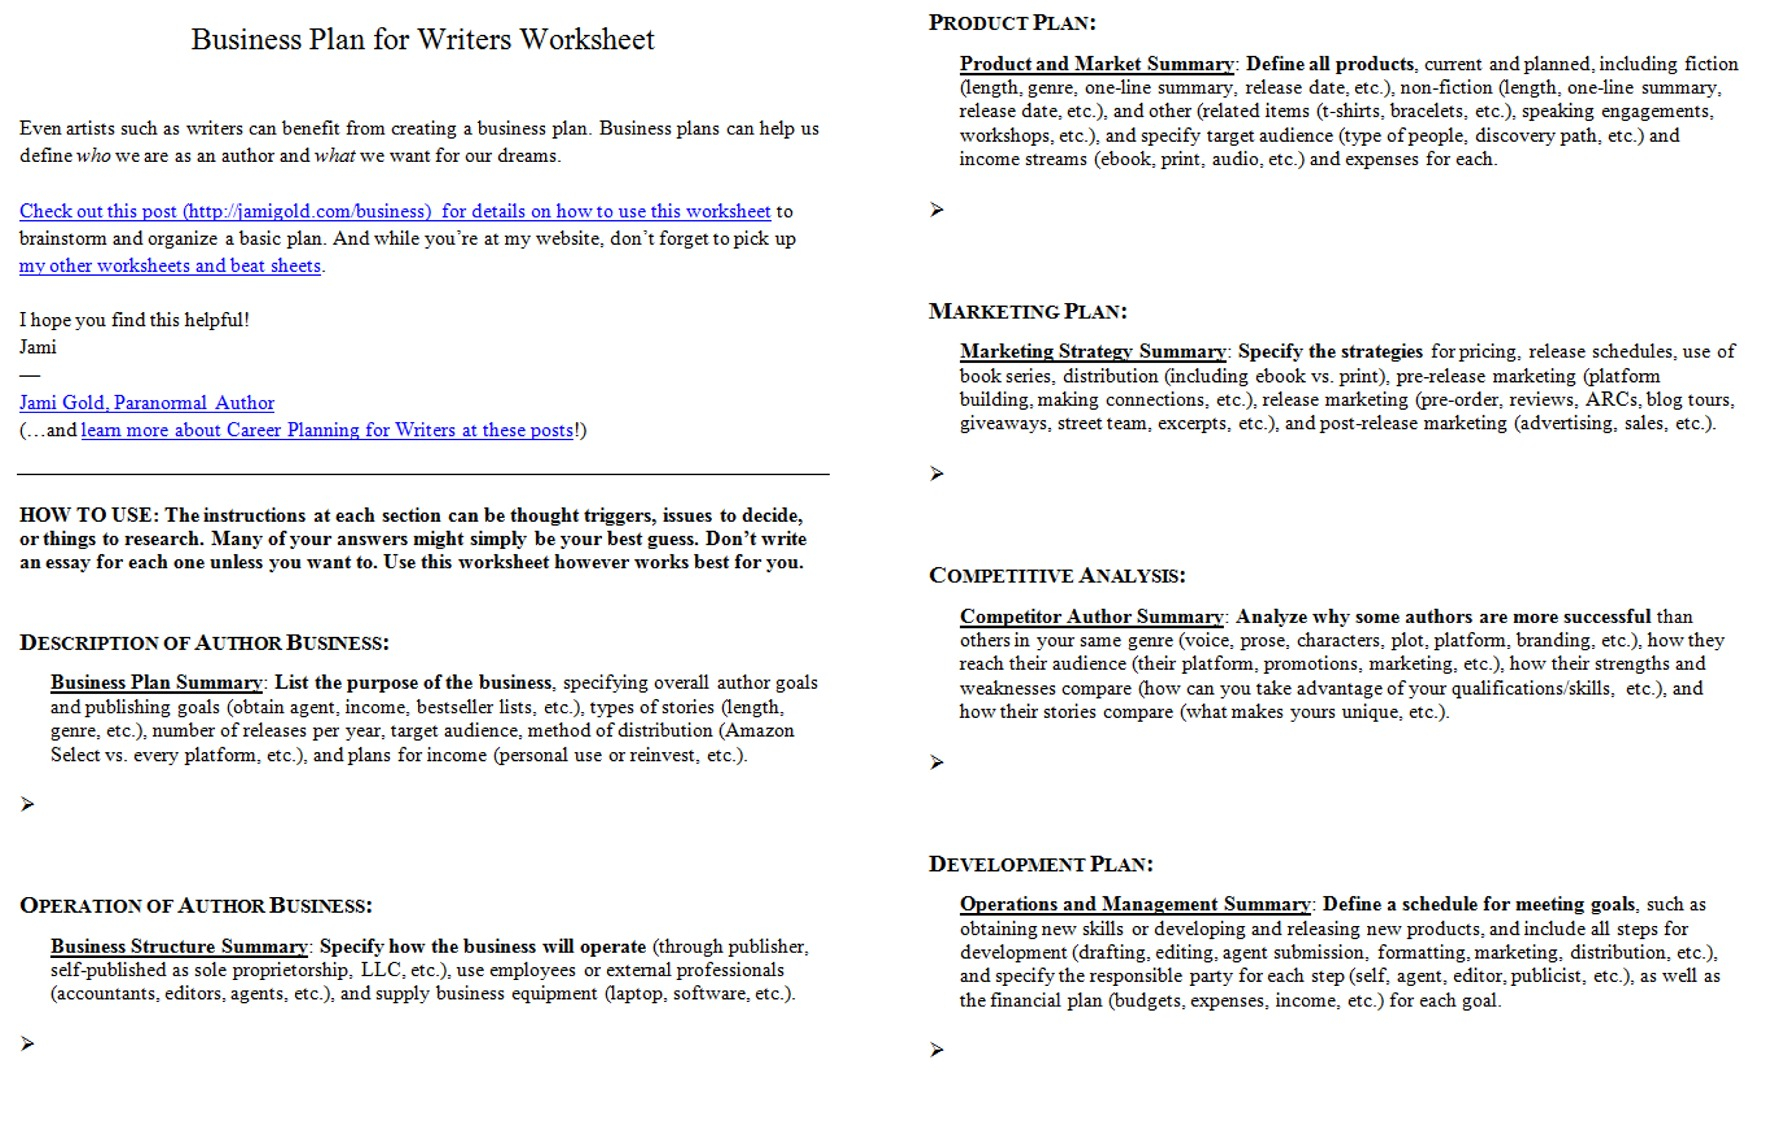 Proatmealus  Fascinating Worksheets For Writers  Jami Gold Paranormal Author With Likable Screen Shot Of Both Pages Of The Business Plan For Writers Worksheet With Delectable Colours In French Worksheet Also Super Math Teacher Worksheets In Addition Tenses In English Worksheets And Division Math Facts Worksheet As Well As  Worksheet Additionally Math Sixth Grade Worksheets From Jamigoldcom With Proatmealus  Likable Worksheets For Writers  Jami Gold Paranormal Author With Delectable Screen Shot Of Both Pages Of The Business Plan For Writers Worksheet And Fascinating Colours In French Worksheet Also Super Math Teacher Worksheets In Addition Tenses In English Worksheets From Jamigoldcom